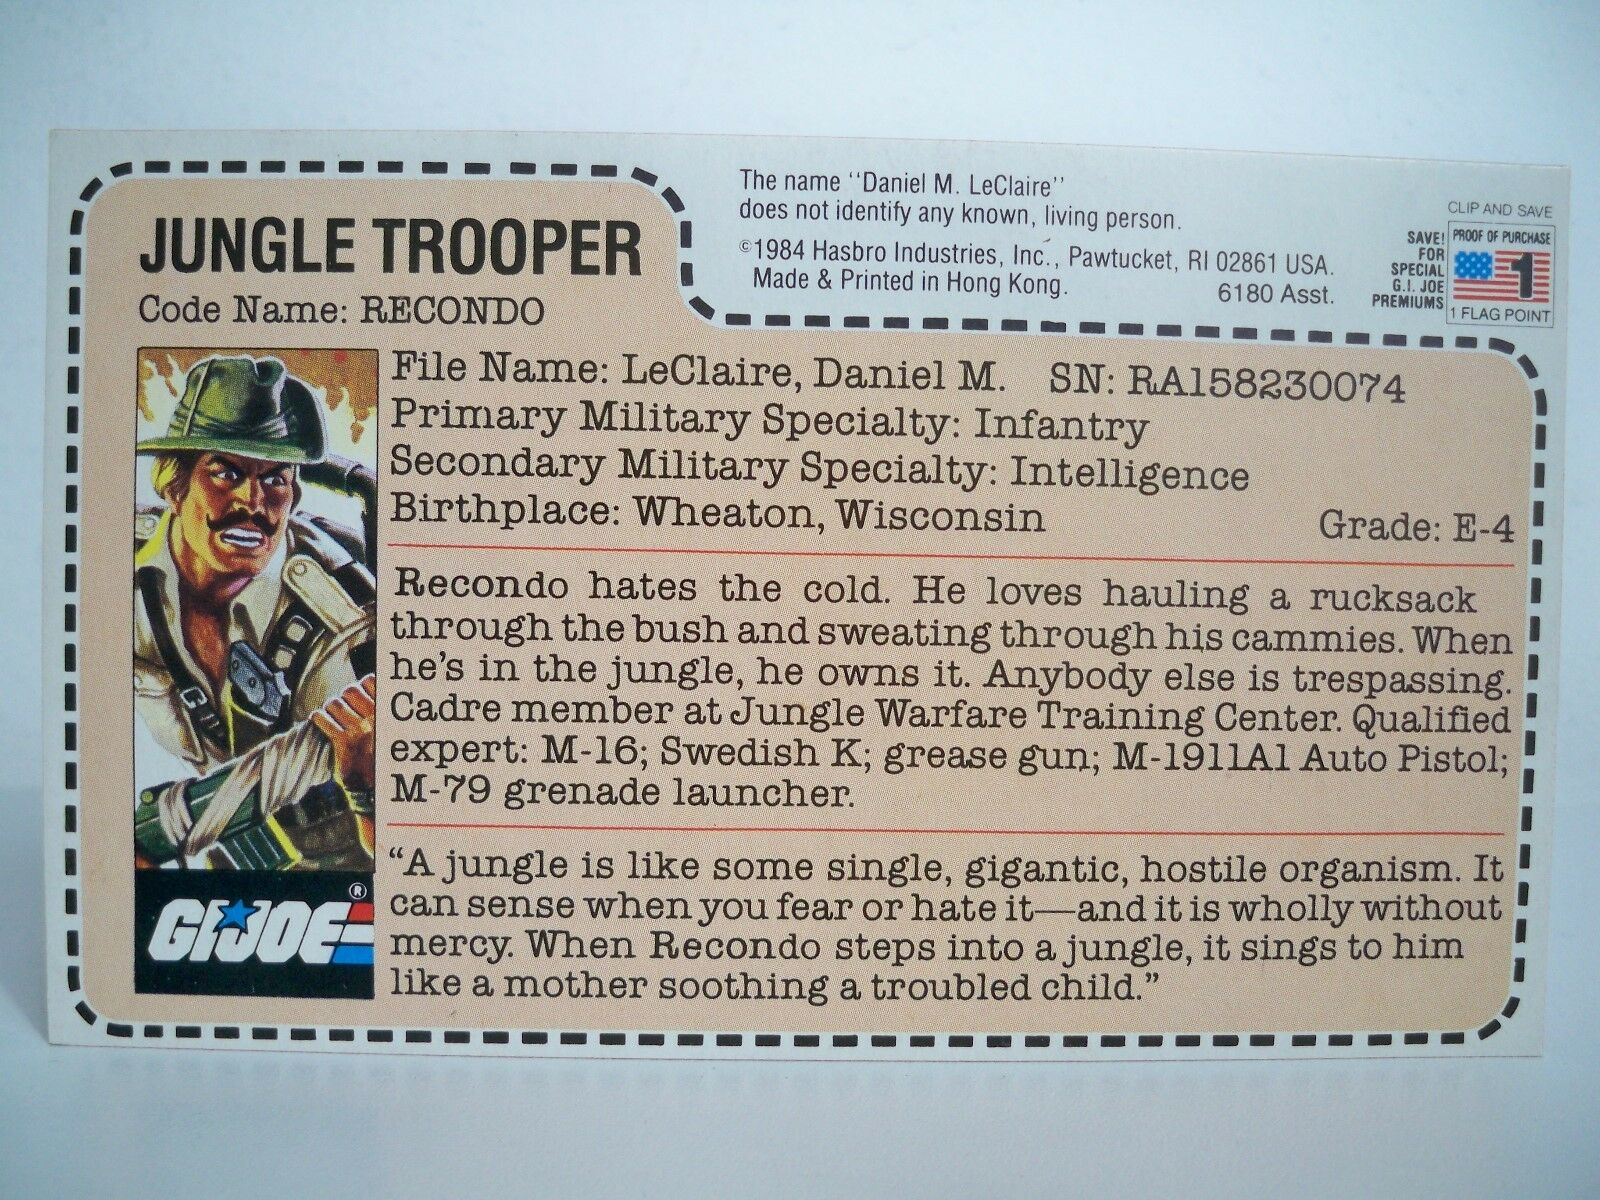 K1805261 RECONDO FILECARD UNCUT ASST 6180 rot BACK GI JOE 1985 MAILAWAY VINTAGE